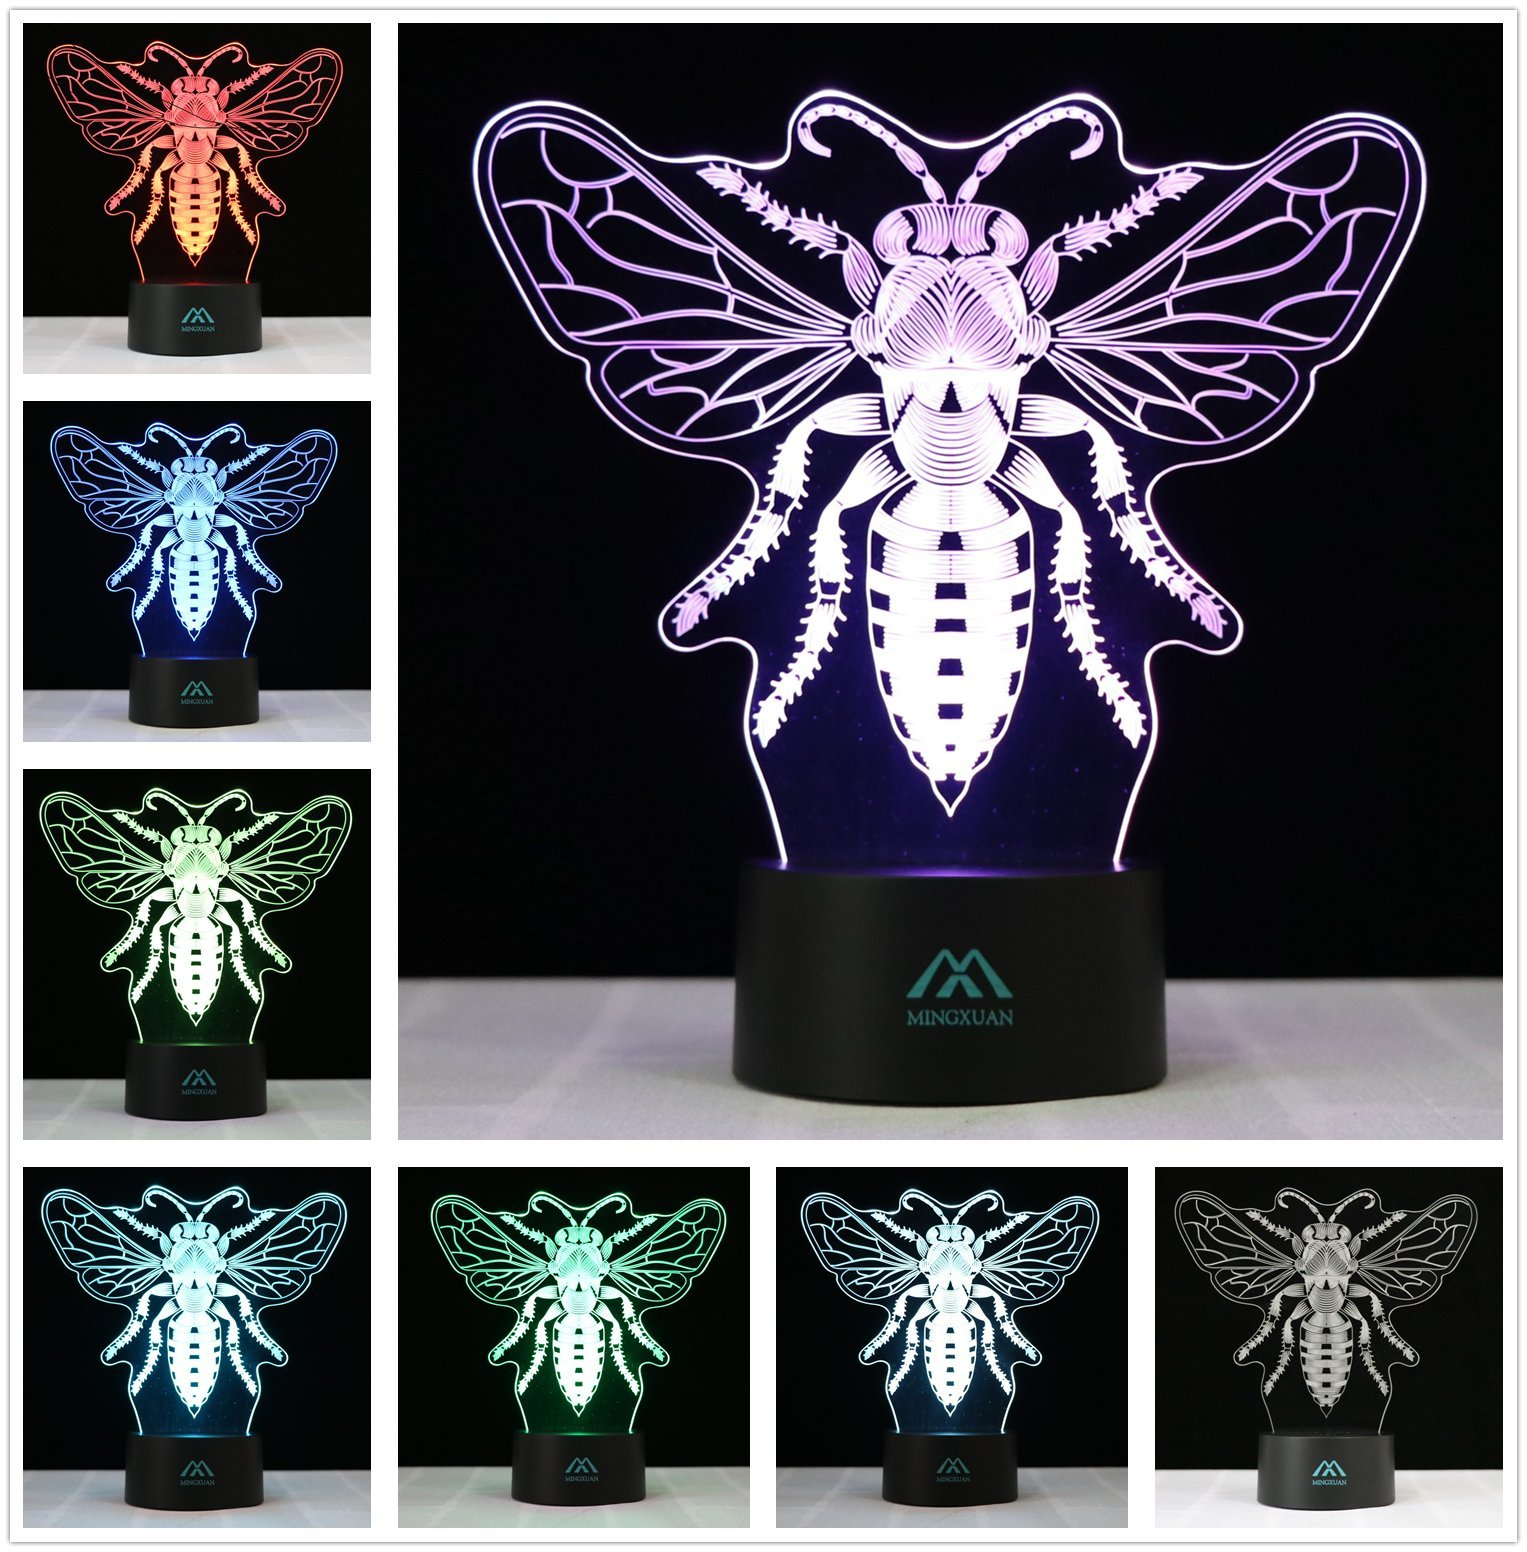 3D Illusion Animal Drosophila LED Desk lamp 7 Color Touch Night Light? Kiddie Children Family Holiday Gift Home Office Childrenroom Theme Decoration by MINGXUAN… by MingXuan